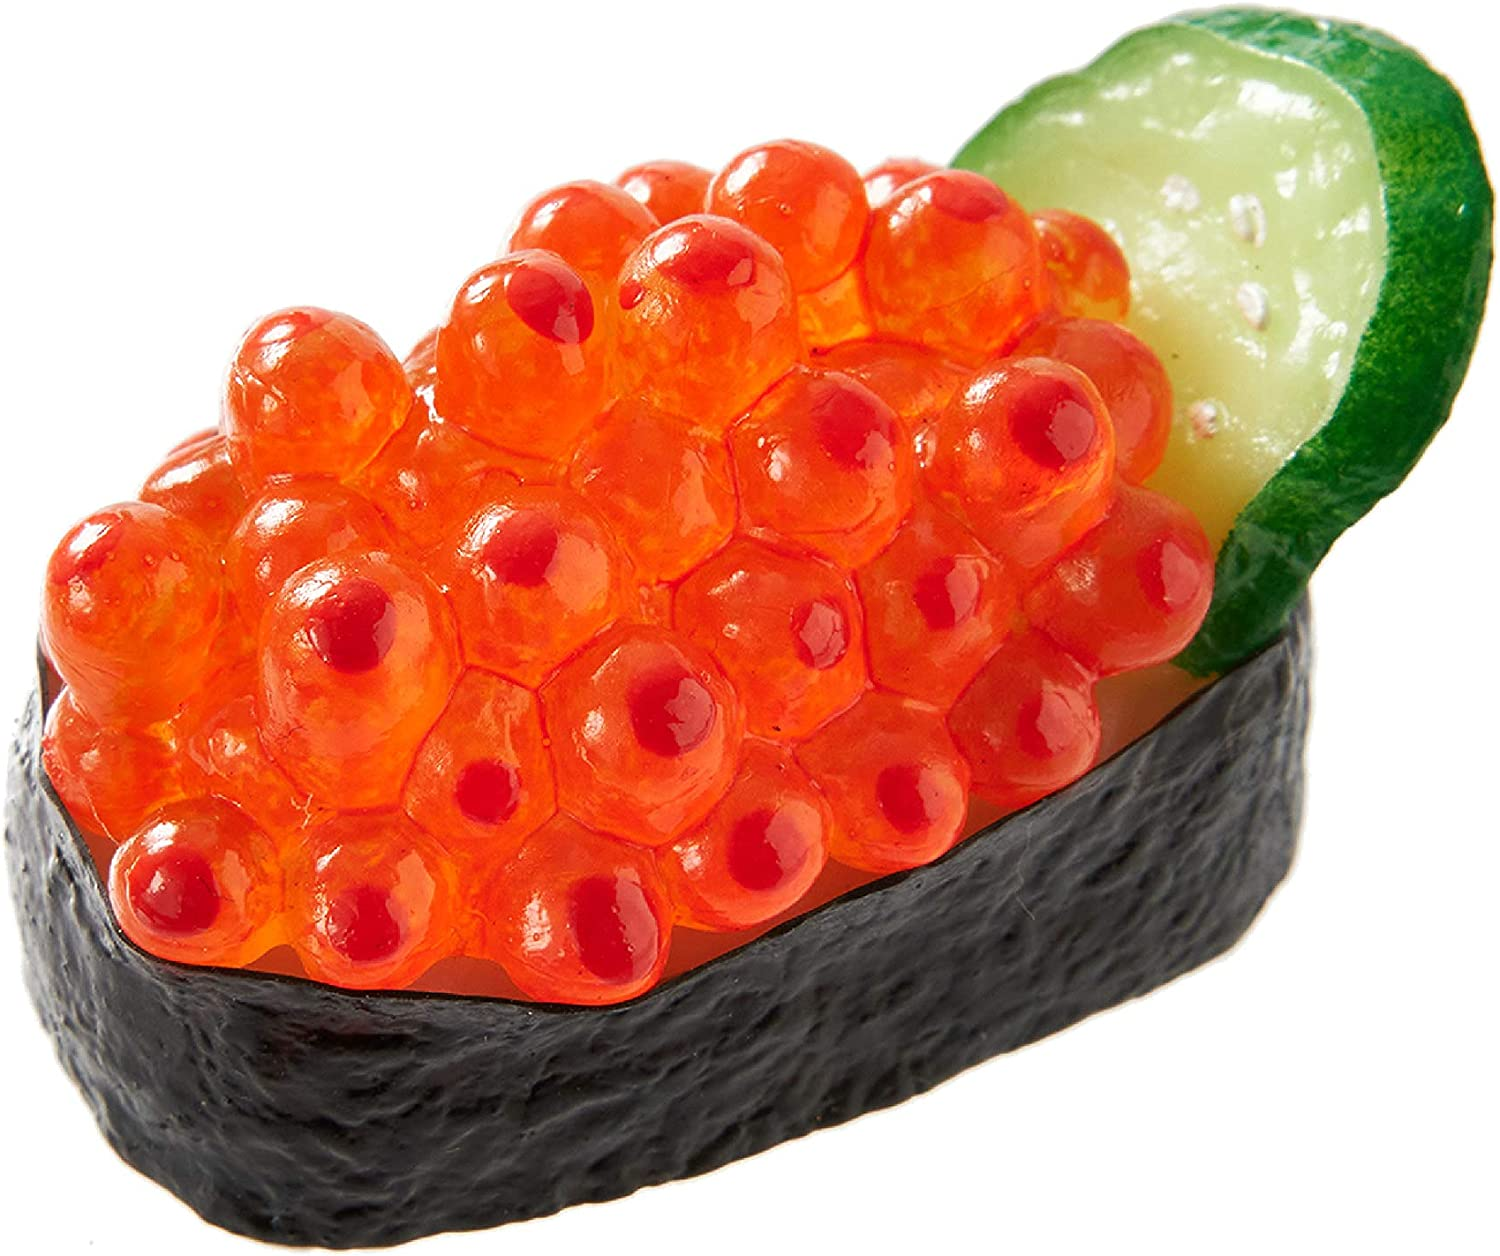 Sushi Magnet (1 pack: Salmon Roe) Realistic, food replicas made by the experts/A great gift for people who like sushi and novelty/For refrigerators, whiteboards/ 20 kinds in total